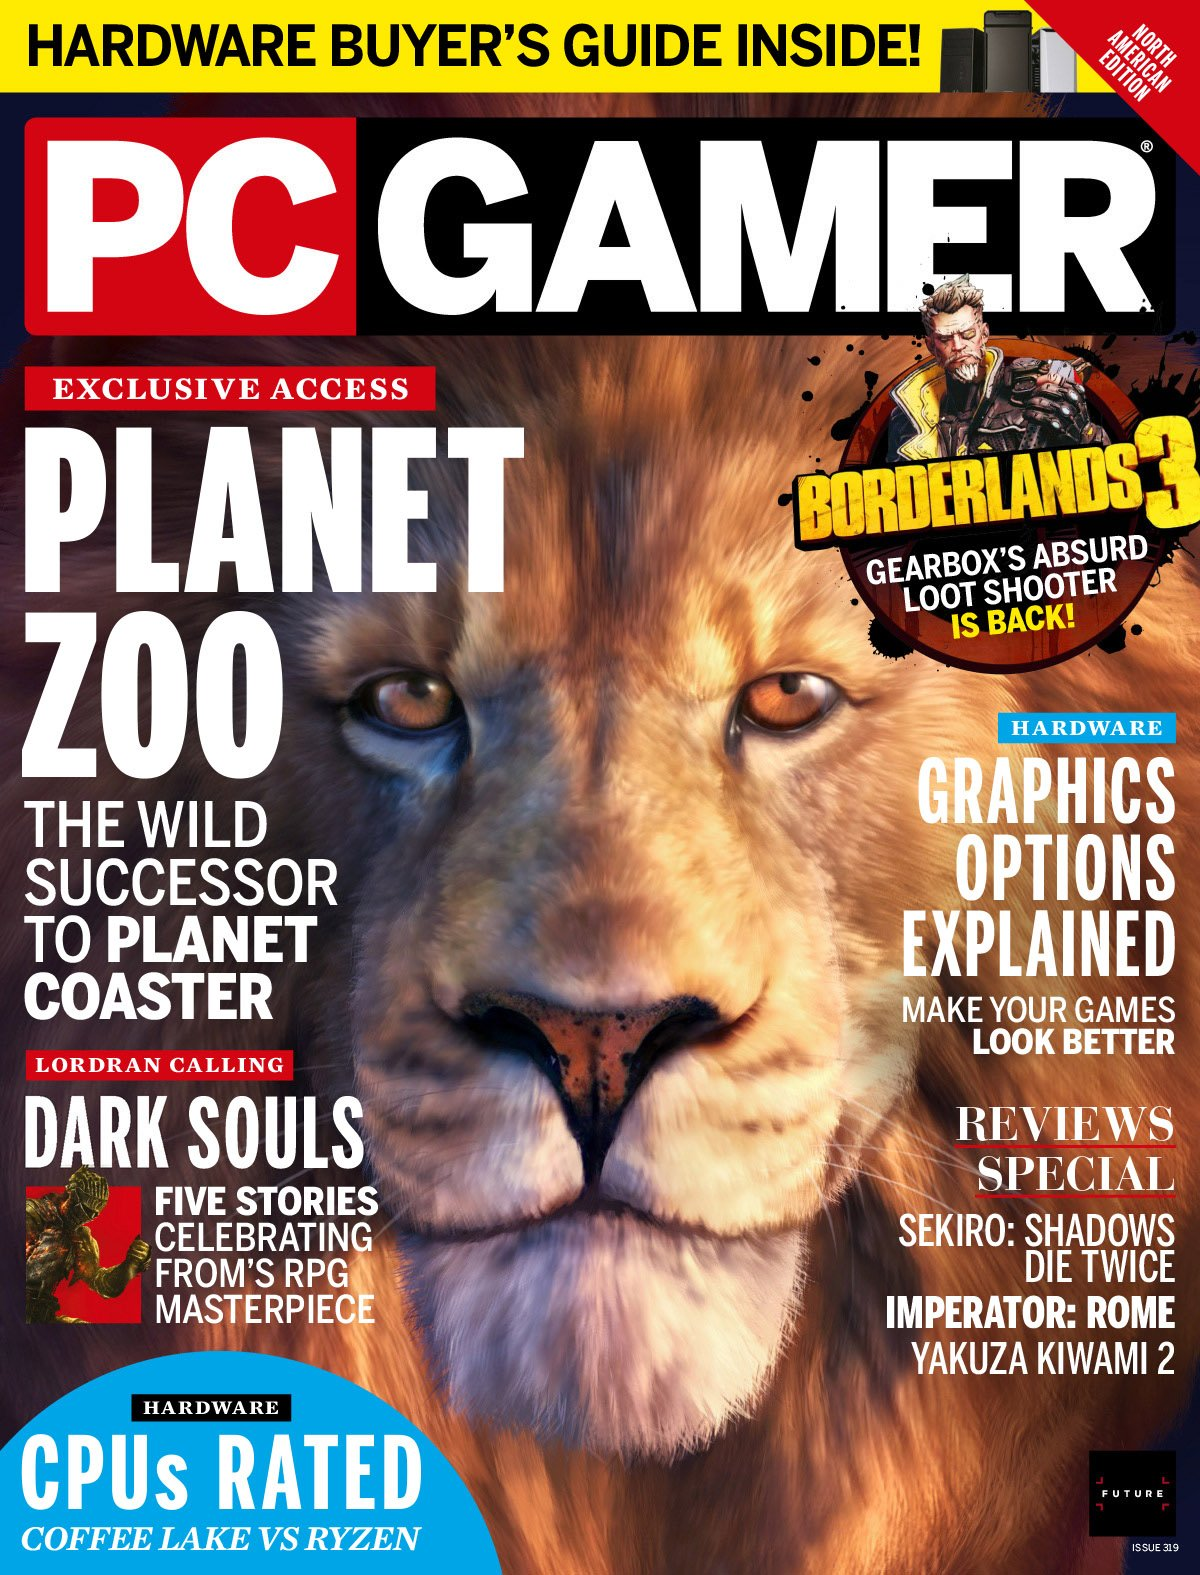 PC Gamer Issue 319 (July 2019)